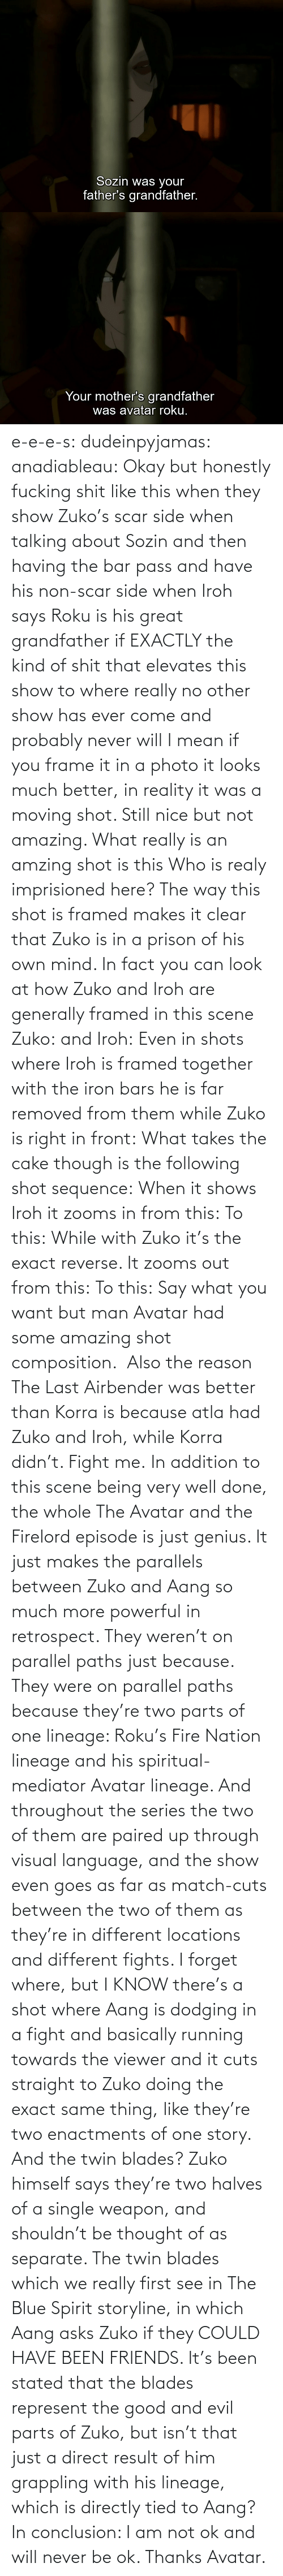 Fucking: e-e-e-s: dudeinpyjamas:   anadiableau: Okay but honestly fucking shit like this when they show Zuko's scar side when talking about Sozin and then having the bar pass and have his non-scar side when Iroh says Roku is his great grandfather if EXACTLY the kind of shit that elevates this show to where really no other show has ever come and probably never will I mean if you frame it in a photo it looks much better, in reality it was a moving shot. Still nice but not amazing. What really is an amzing shot is this Who is realy imprisioned here? The way this shot is framed makes it clear that Zuko is in a prison of his own mind. In fact you can look at how Zuko and Iroh are generally framed in this scene Zuko: and Iroh: Even in shots where Iroh is framed together with the iron bars he is far removed from them while Zuko is right in front:  What takes the cake though is the following shot sequence: When it shows Iroh it zooms in from this: To this: While with Zuko it's the exact reverse. It zooms out from this: To this: Say what you want but man Avatar had some amazing shot composition.   Also the reason The Last Airbender was better than Korra is because atla had Zuko and Iroh, while Korra didn't. Fight me.    In addition to this scene being very well done, the whole The Avatar and the Firelord episode is just genius.  It just makes the parallels between Zuko and Aang so much more powerful in retrospect.  They weren't on parallel paths just because.  They were on parallel paths because they're two parts of one lineage: Roku's Fire Nation lineage and his spiritual-mediator Avatar lineage.  And throughout the series the two of them are paired up through visual language, and the show even goes as far as match-cuts between the two of them as they're in different locations and different fights.  I forget where, but I KNOW there's a shot where Aang is dodging in a fight and basically running towards the viewer and it cuts straight to Zuko doing the exact same thing, like they're two enactments of one story.   And the twin blades?  Zuko himself says they're two halves of a single weapon, and shouldn't be thought of as separate.  The twin blades which we really first see in The Blue Spirit storyline, in which Aang asks Zuko if they COULD HAVE BEEN FRIENDS.  It's been stated that the blades represent the good and evil parts of Zuko, but isn't that just a direct result of him grappling with his lineage, which is directly tied to Aang? In conclusion: I am not ok and will never be ok.  Thanks Avatar.